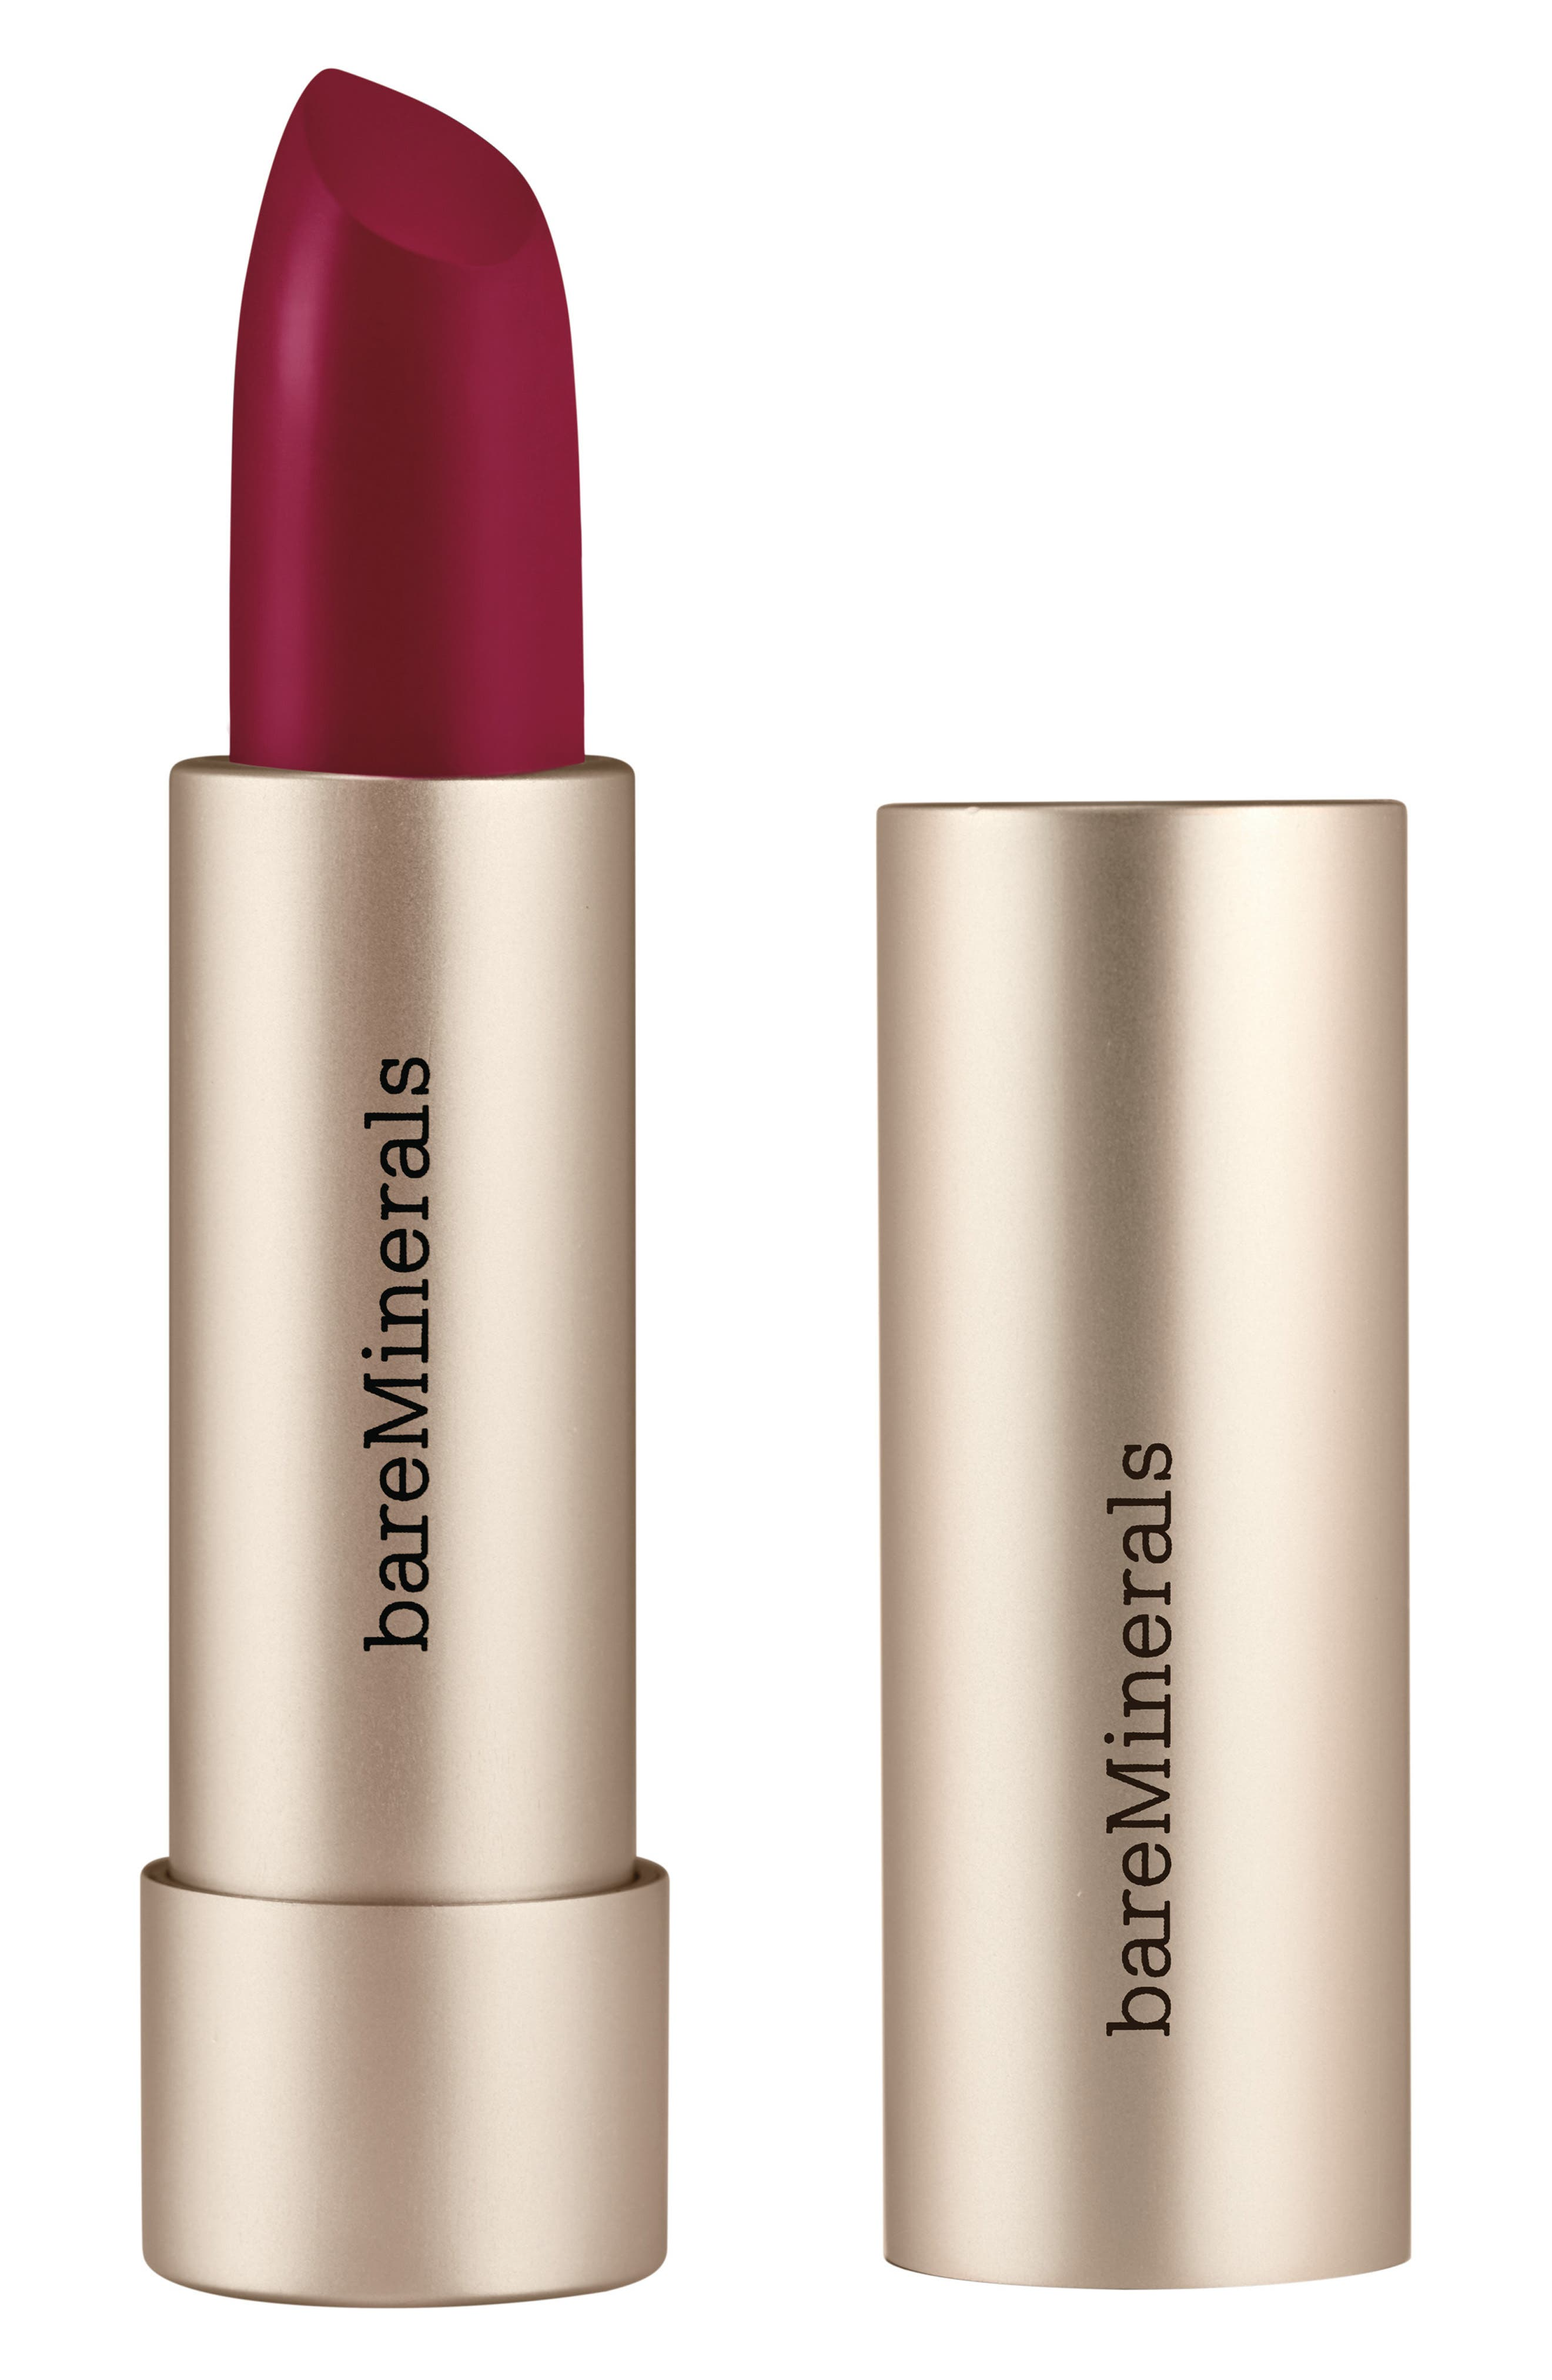 What it is: A mineral-infused vegan lipstick with minimal ingredients that delivers twice the hydration and richer color than regular lipstick. What it does: Made with just 19 vegan ingredients including cold-pressed fruit oil, this lipstick delivers lightweight smoothing hydration and rich color with a single swipe. How to use: Swipe directly onto lips from the bullet. For increased definition and longer wear, pair with a lip liner. Style